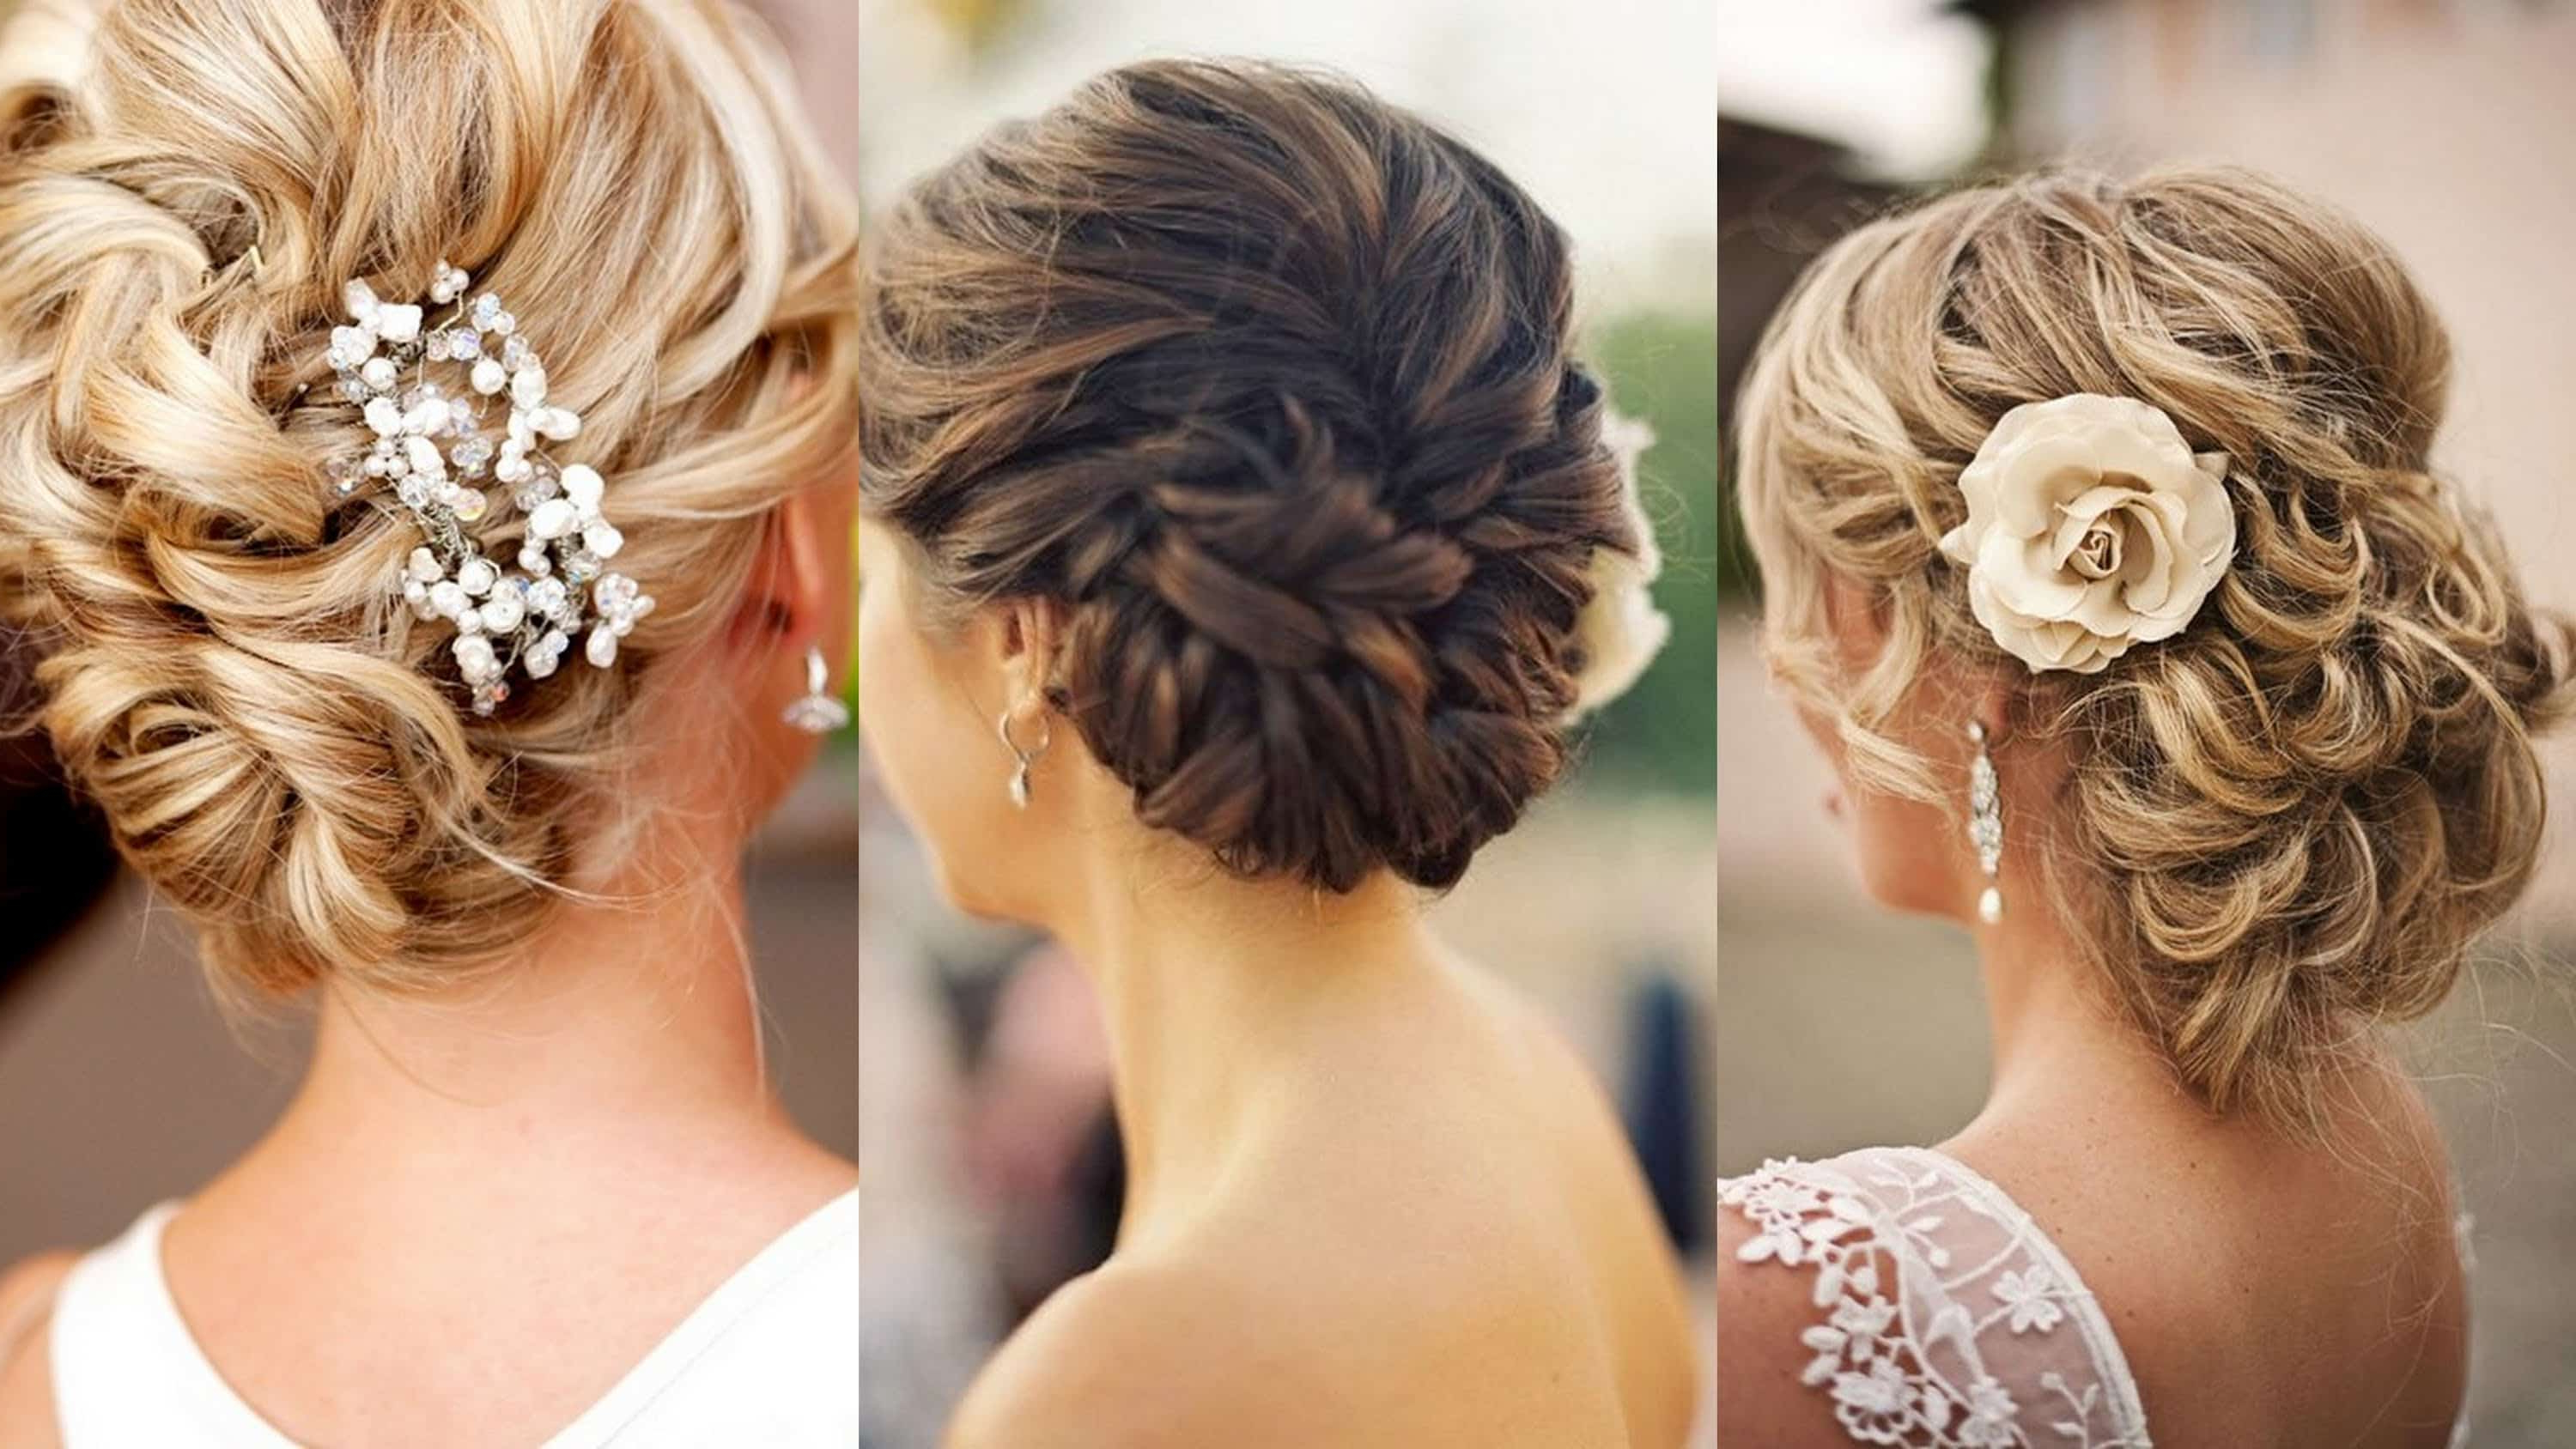 20 Stunning Wedding Hair Updos To Inspire Every Bride – Hairstylevill With Regard To 2017 Swirled Wedding Updos With Embellishment (Gallery 2 of 20)